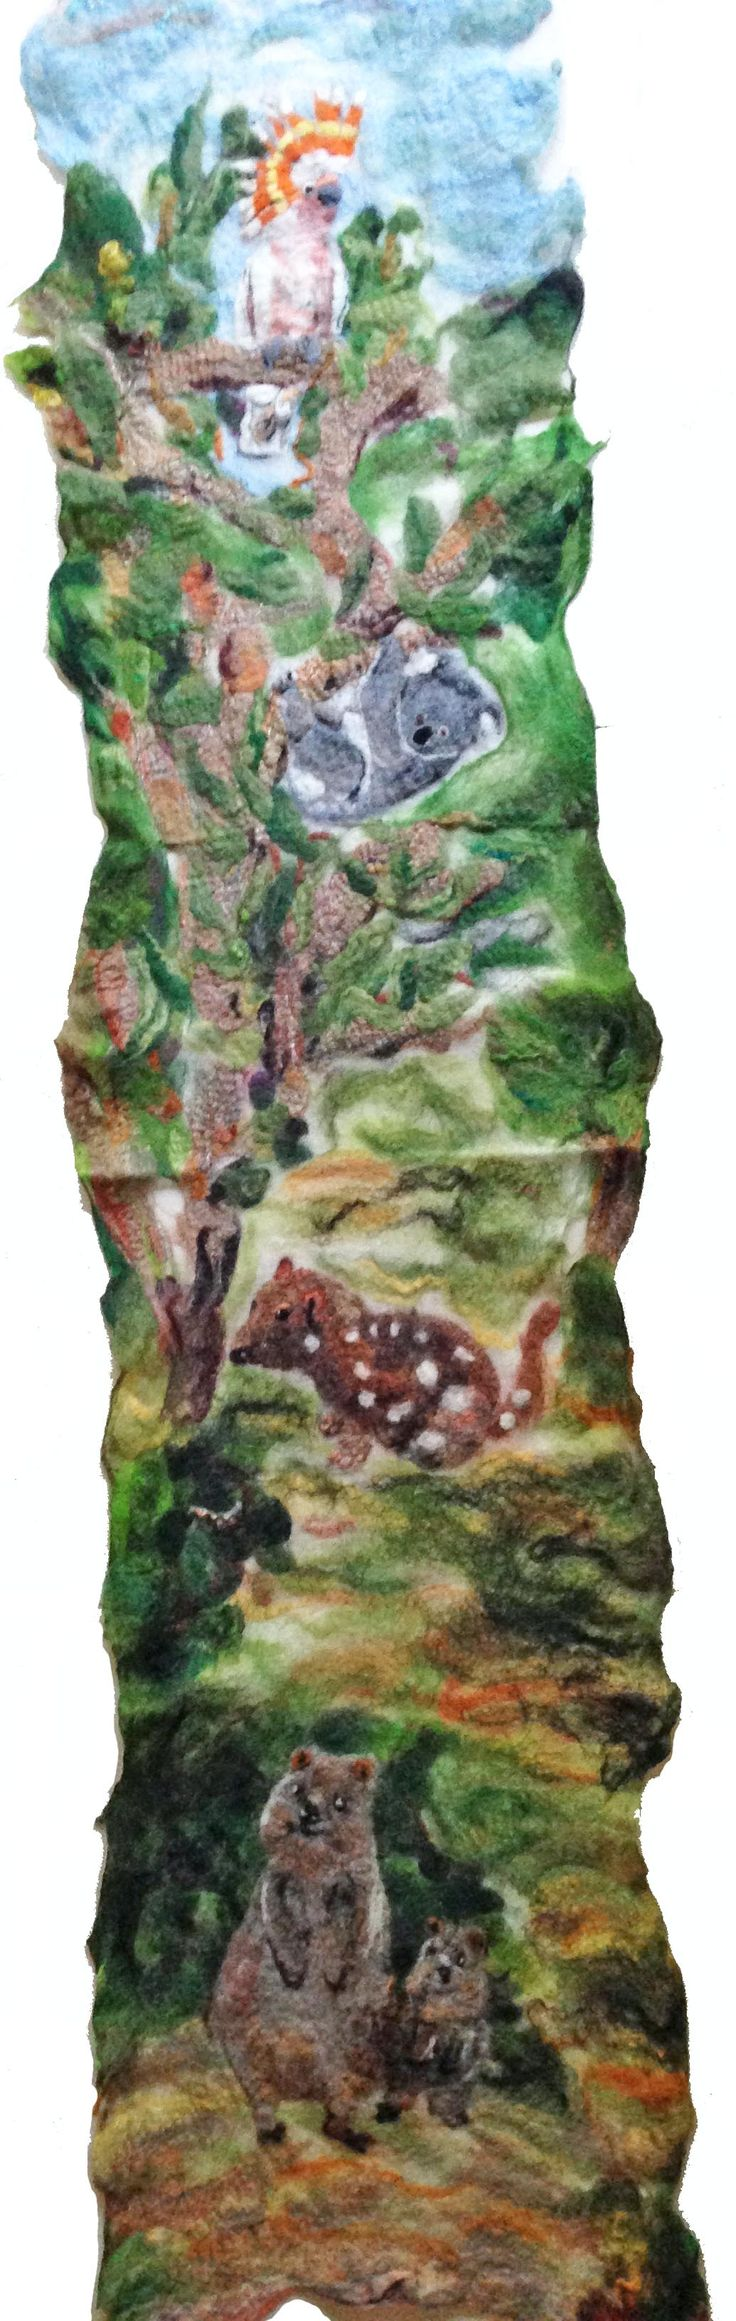 Felting featuring Australian birds and animals. Quokka at the bottom, followed by spotted quoll, Koala and Major Mitchell cockatoo